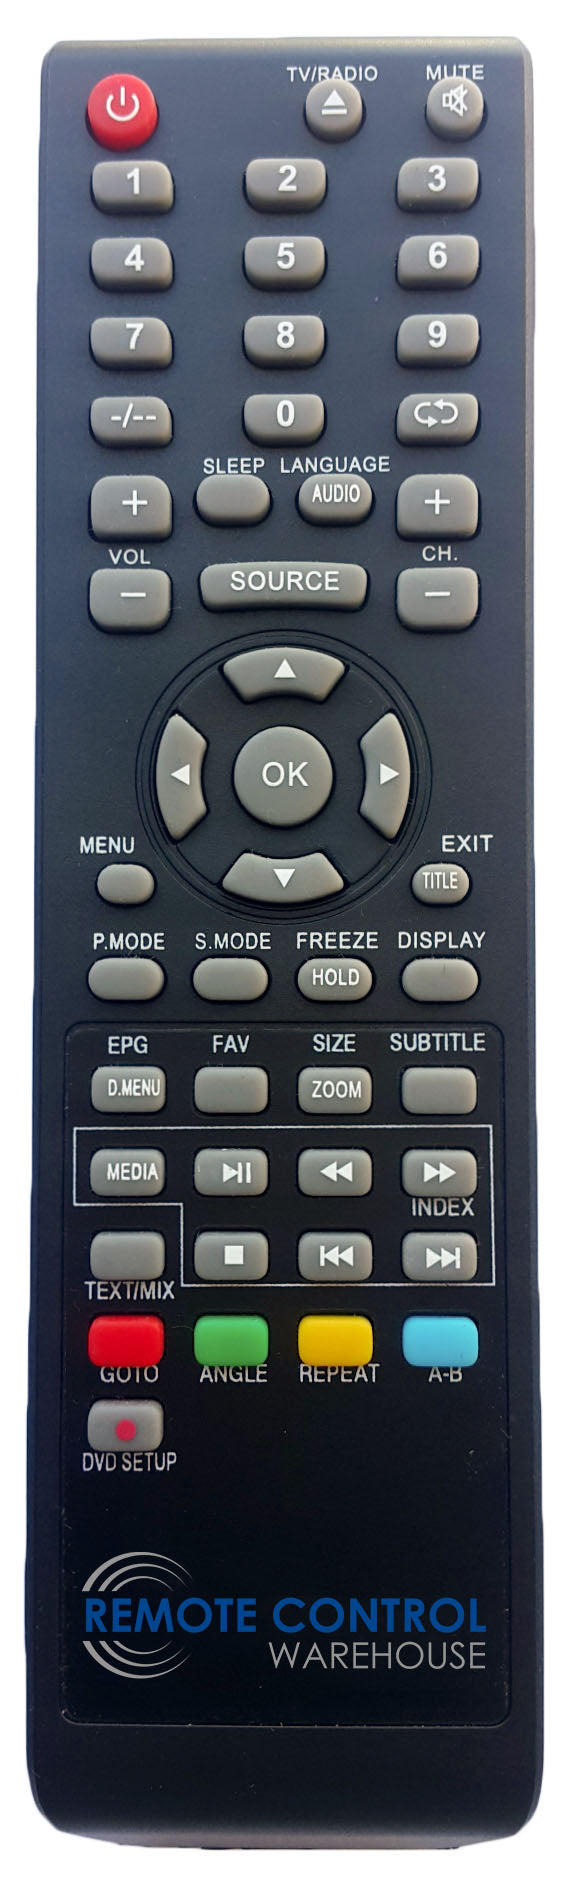 REPLACEMENT BAUHN REMOTE CONTROL - ATV185-014  AT215D-0216  ATV32-715  ATV32H-1215  ATV40-014   ATV50-014  ATV50-715  ATV50F-415  ATVU65-0916  LCD TV - Remote Control Warehouse